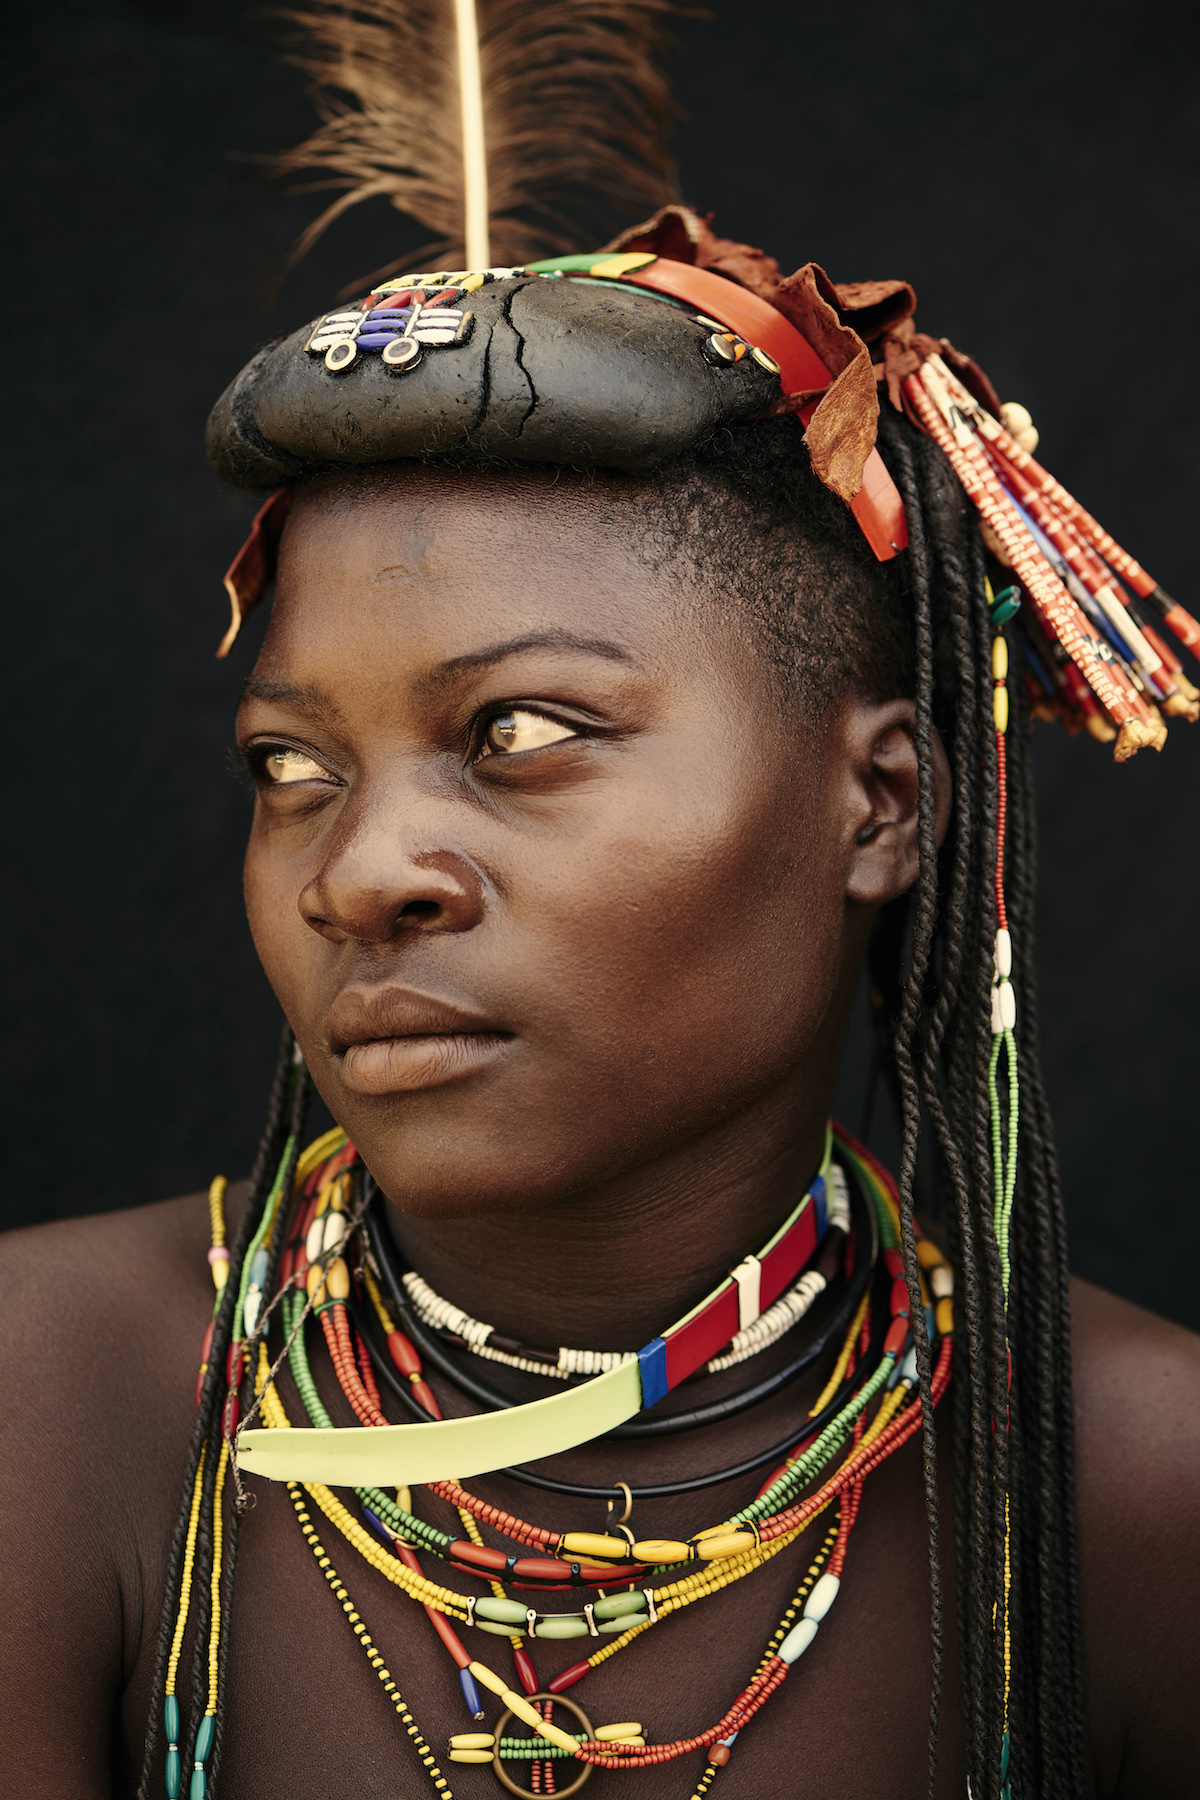 Portrait of Mucawana Woman from Angola by Adam Koziol